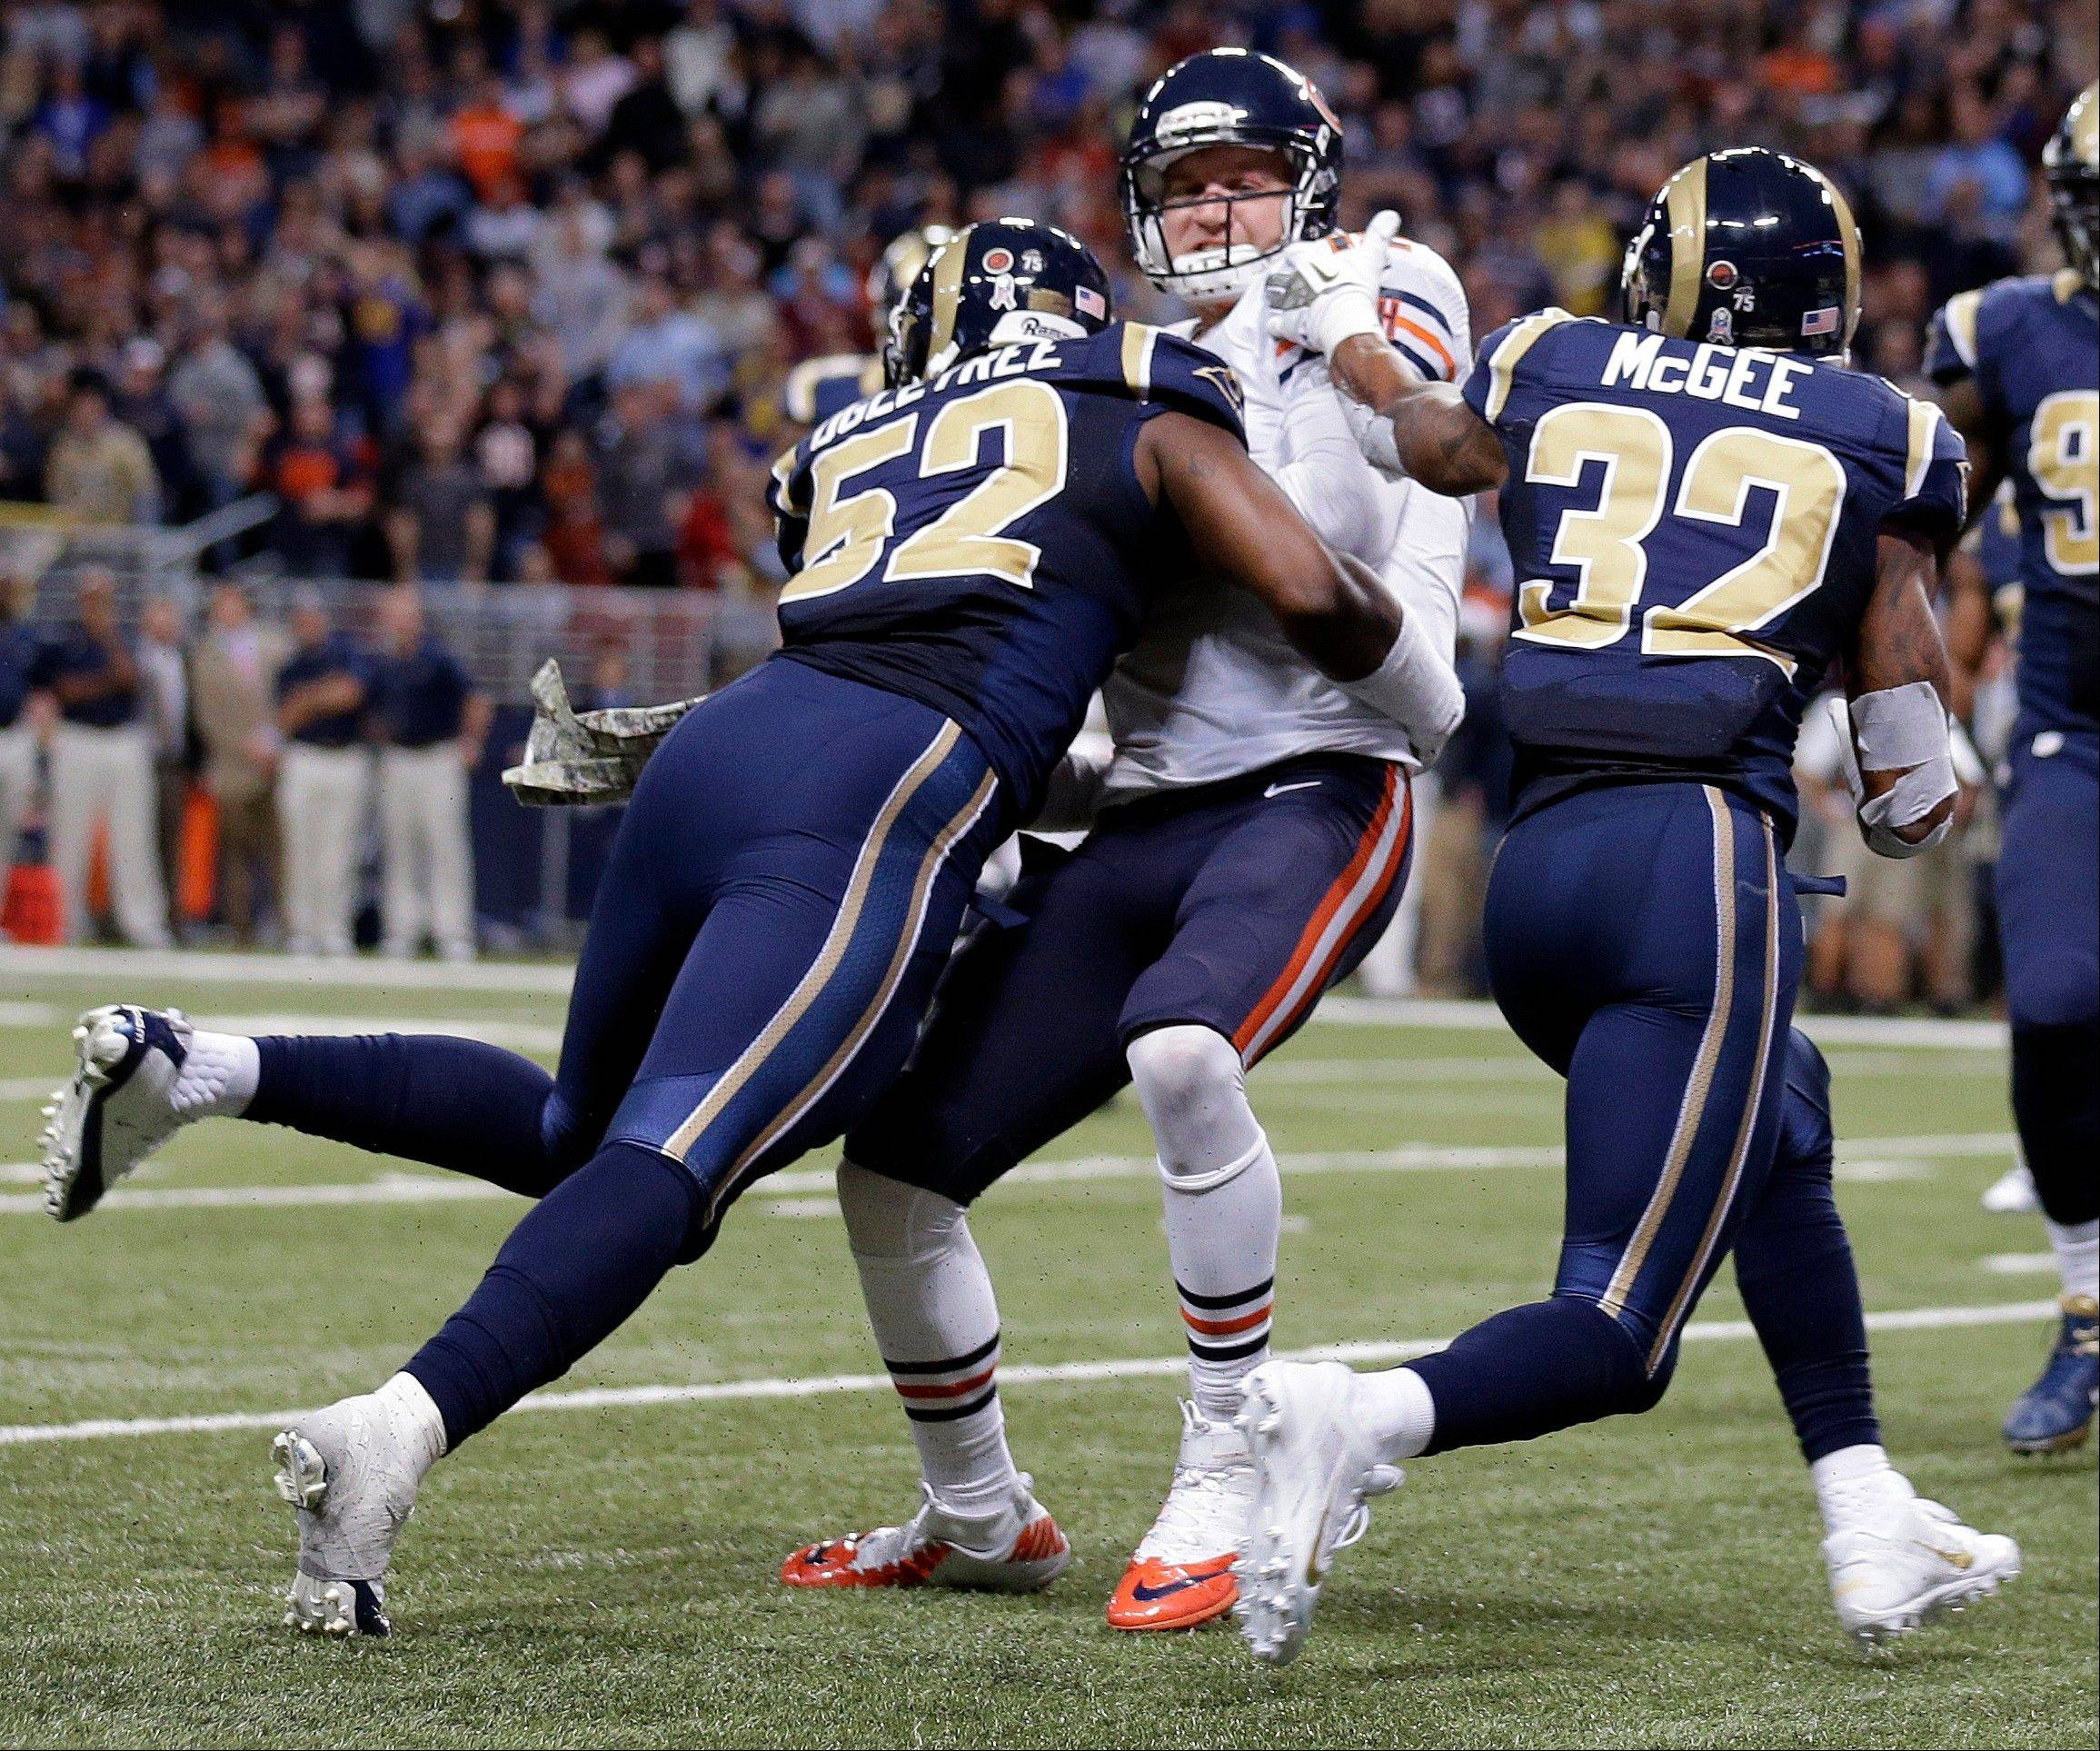 Chicago Bears quarterback Josh McCown, center, runs with the ball but is stopped short of the end zone by St. Louis Rams linebacker Alec Ogletree (52) and cornerback Brandon McGee (32) during the third quarter.